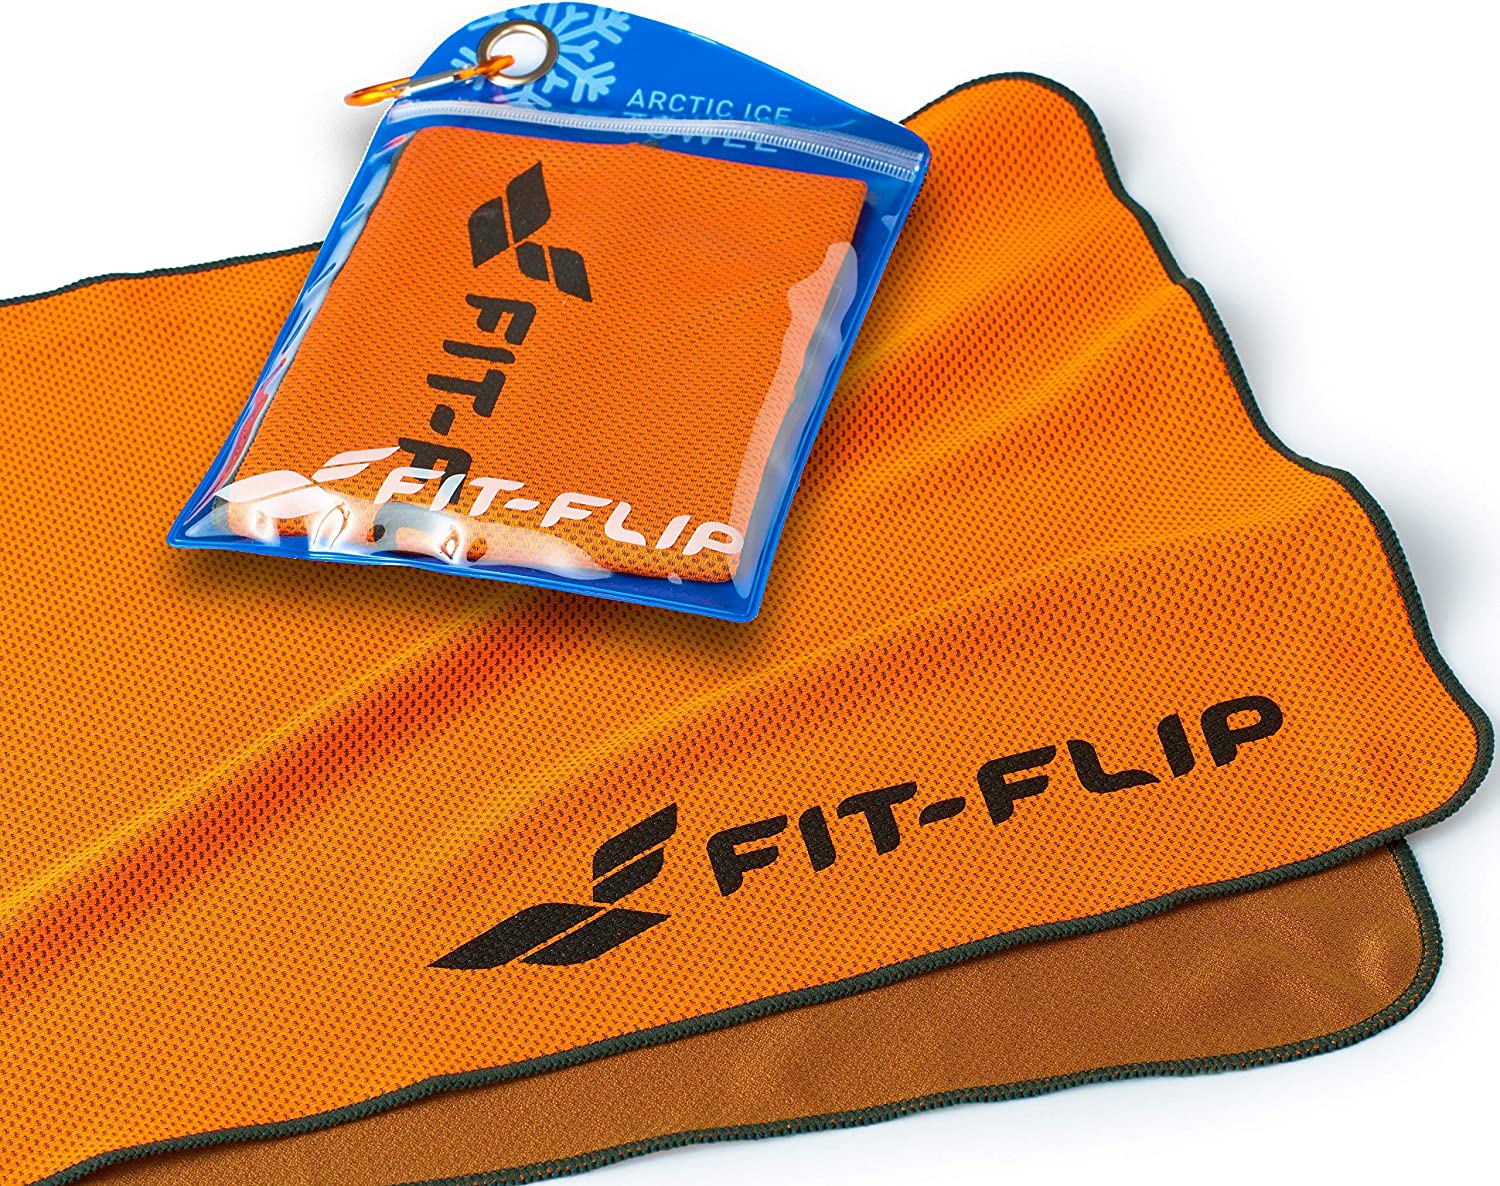 hiking microfibre cooling towel as an ice cooling towel for running travel /& yoga cooling towel Cooling towel for sport /& fitness